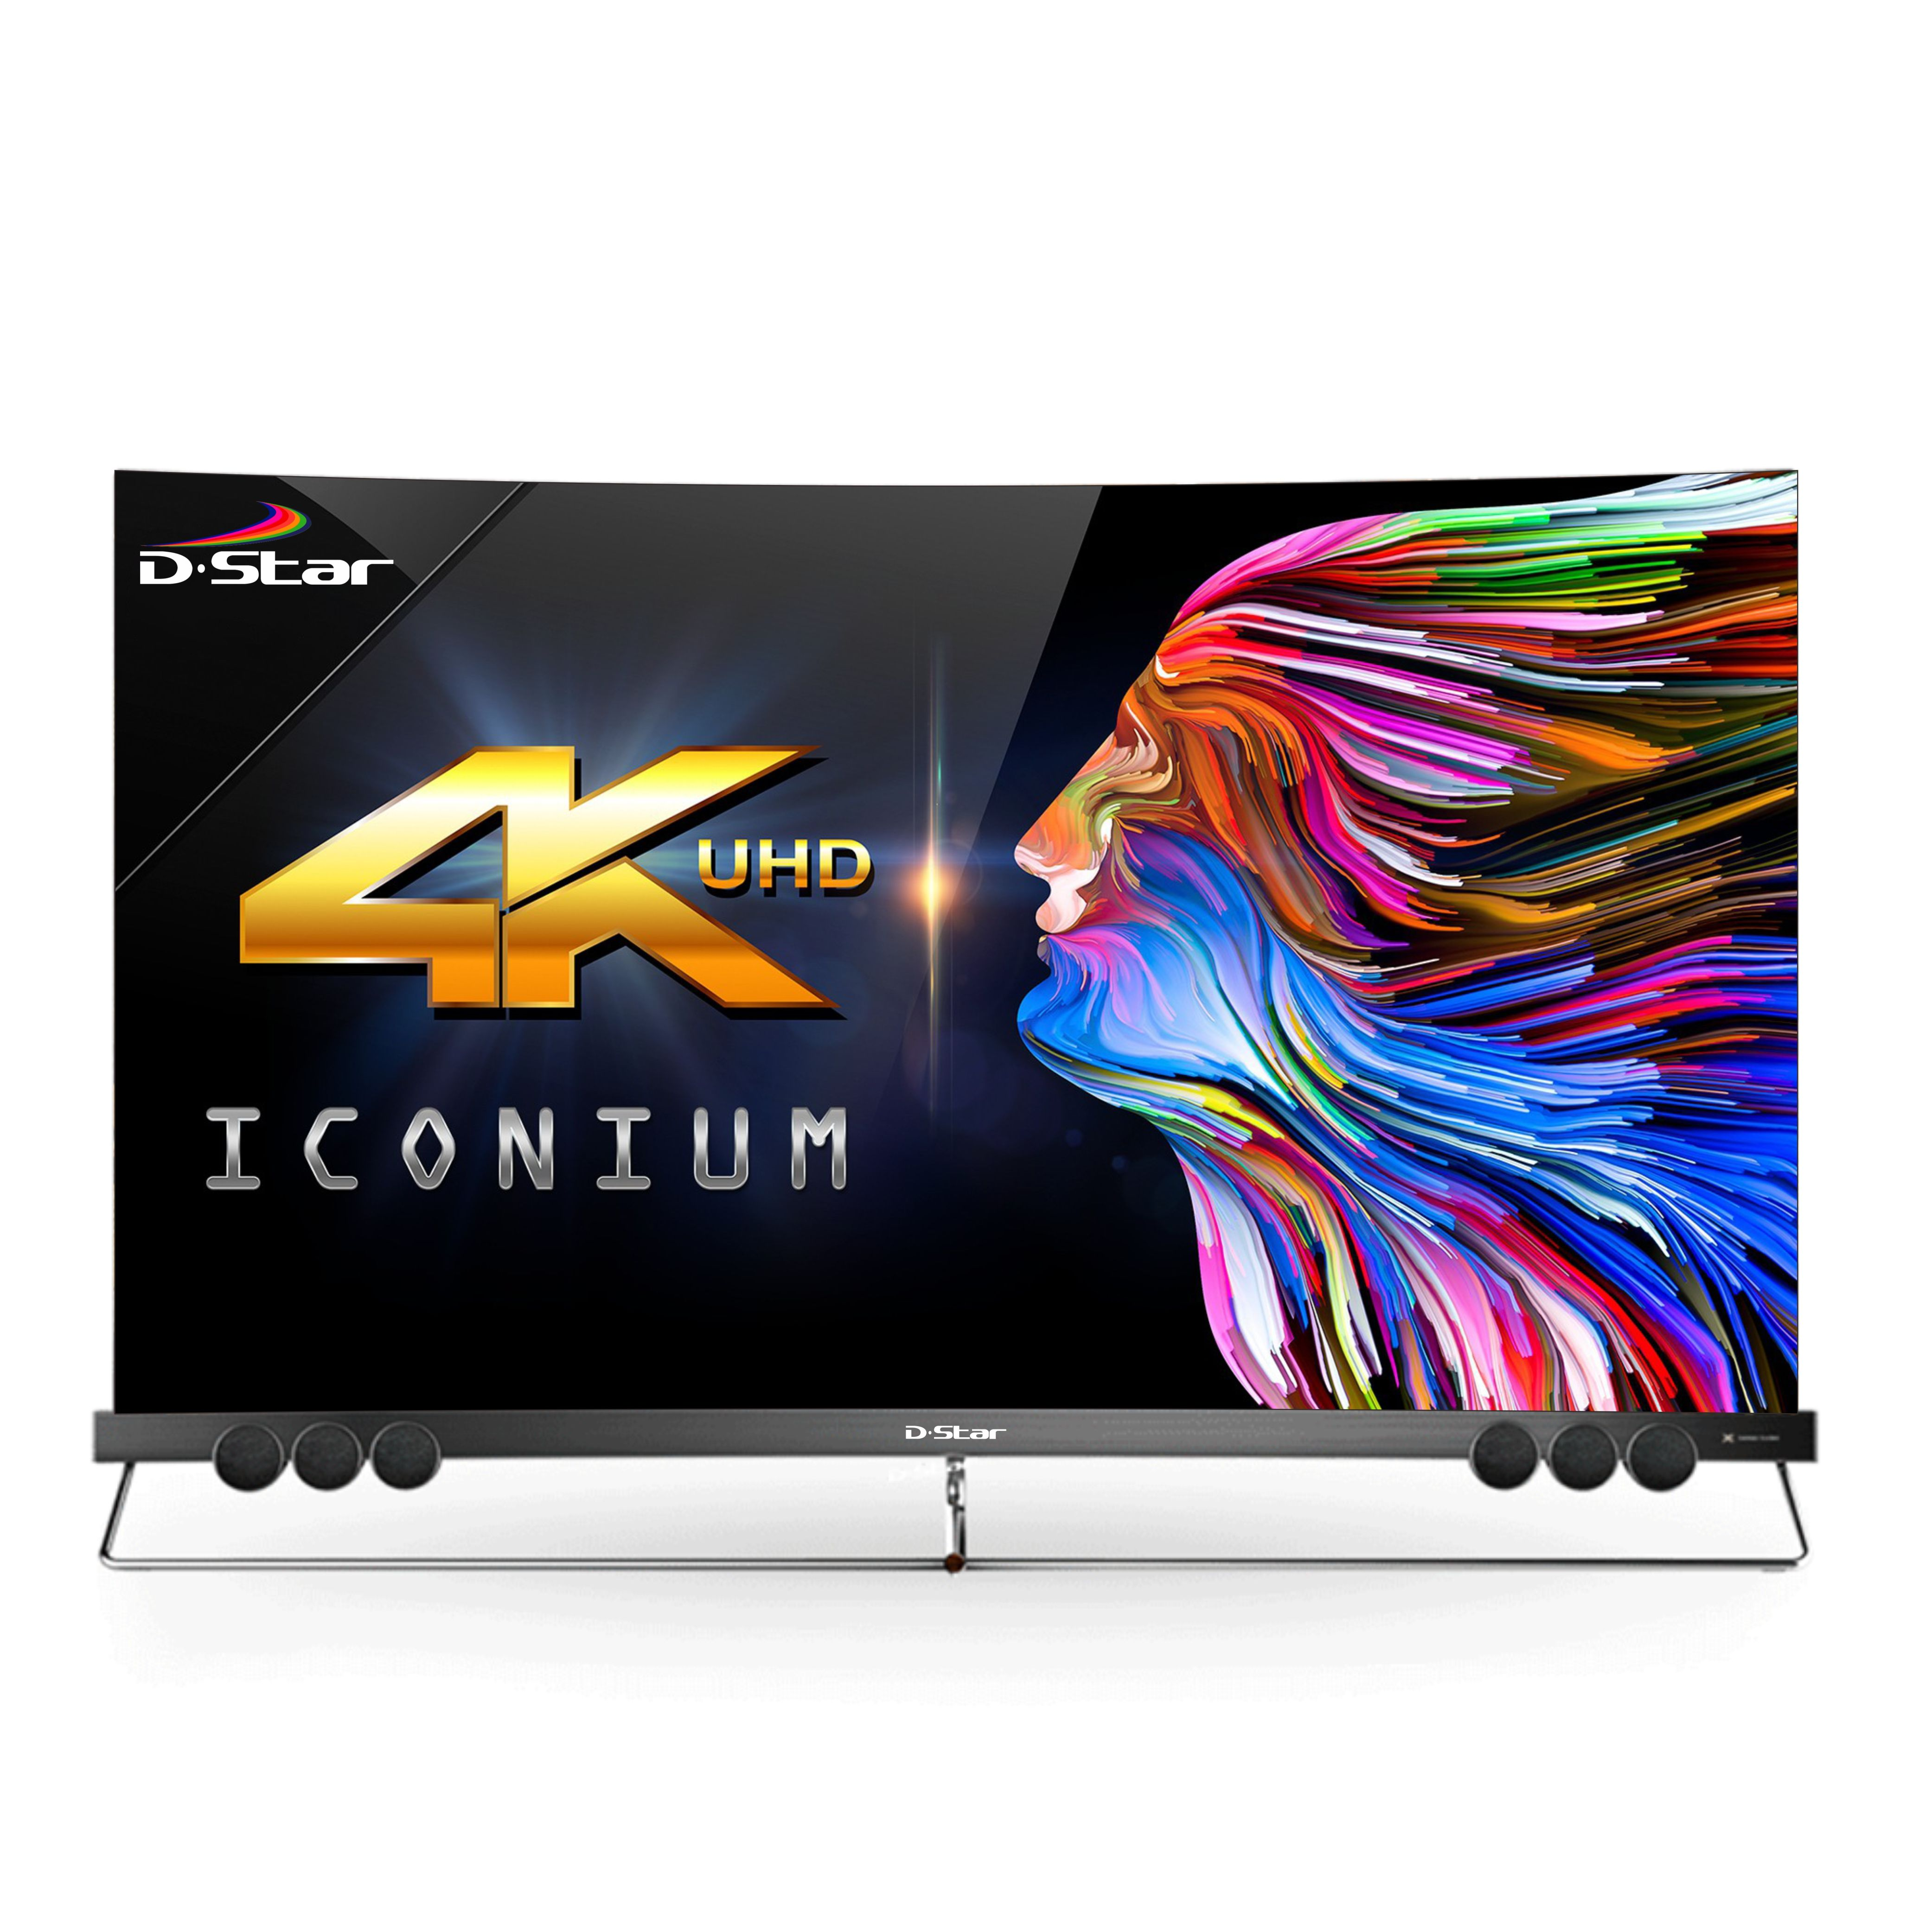 Produttore 75 pollici <span class=keywords><strong>tv</strong></span> led 65 pollici 4k ultra hd smart <span class=keywords><strong>tv</strong></span> 32 pollici 55 pollici oled <span class=keywords><strong>tv</strong></span> con android wifi